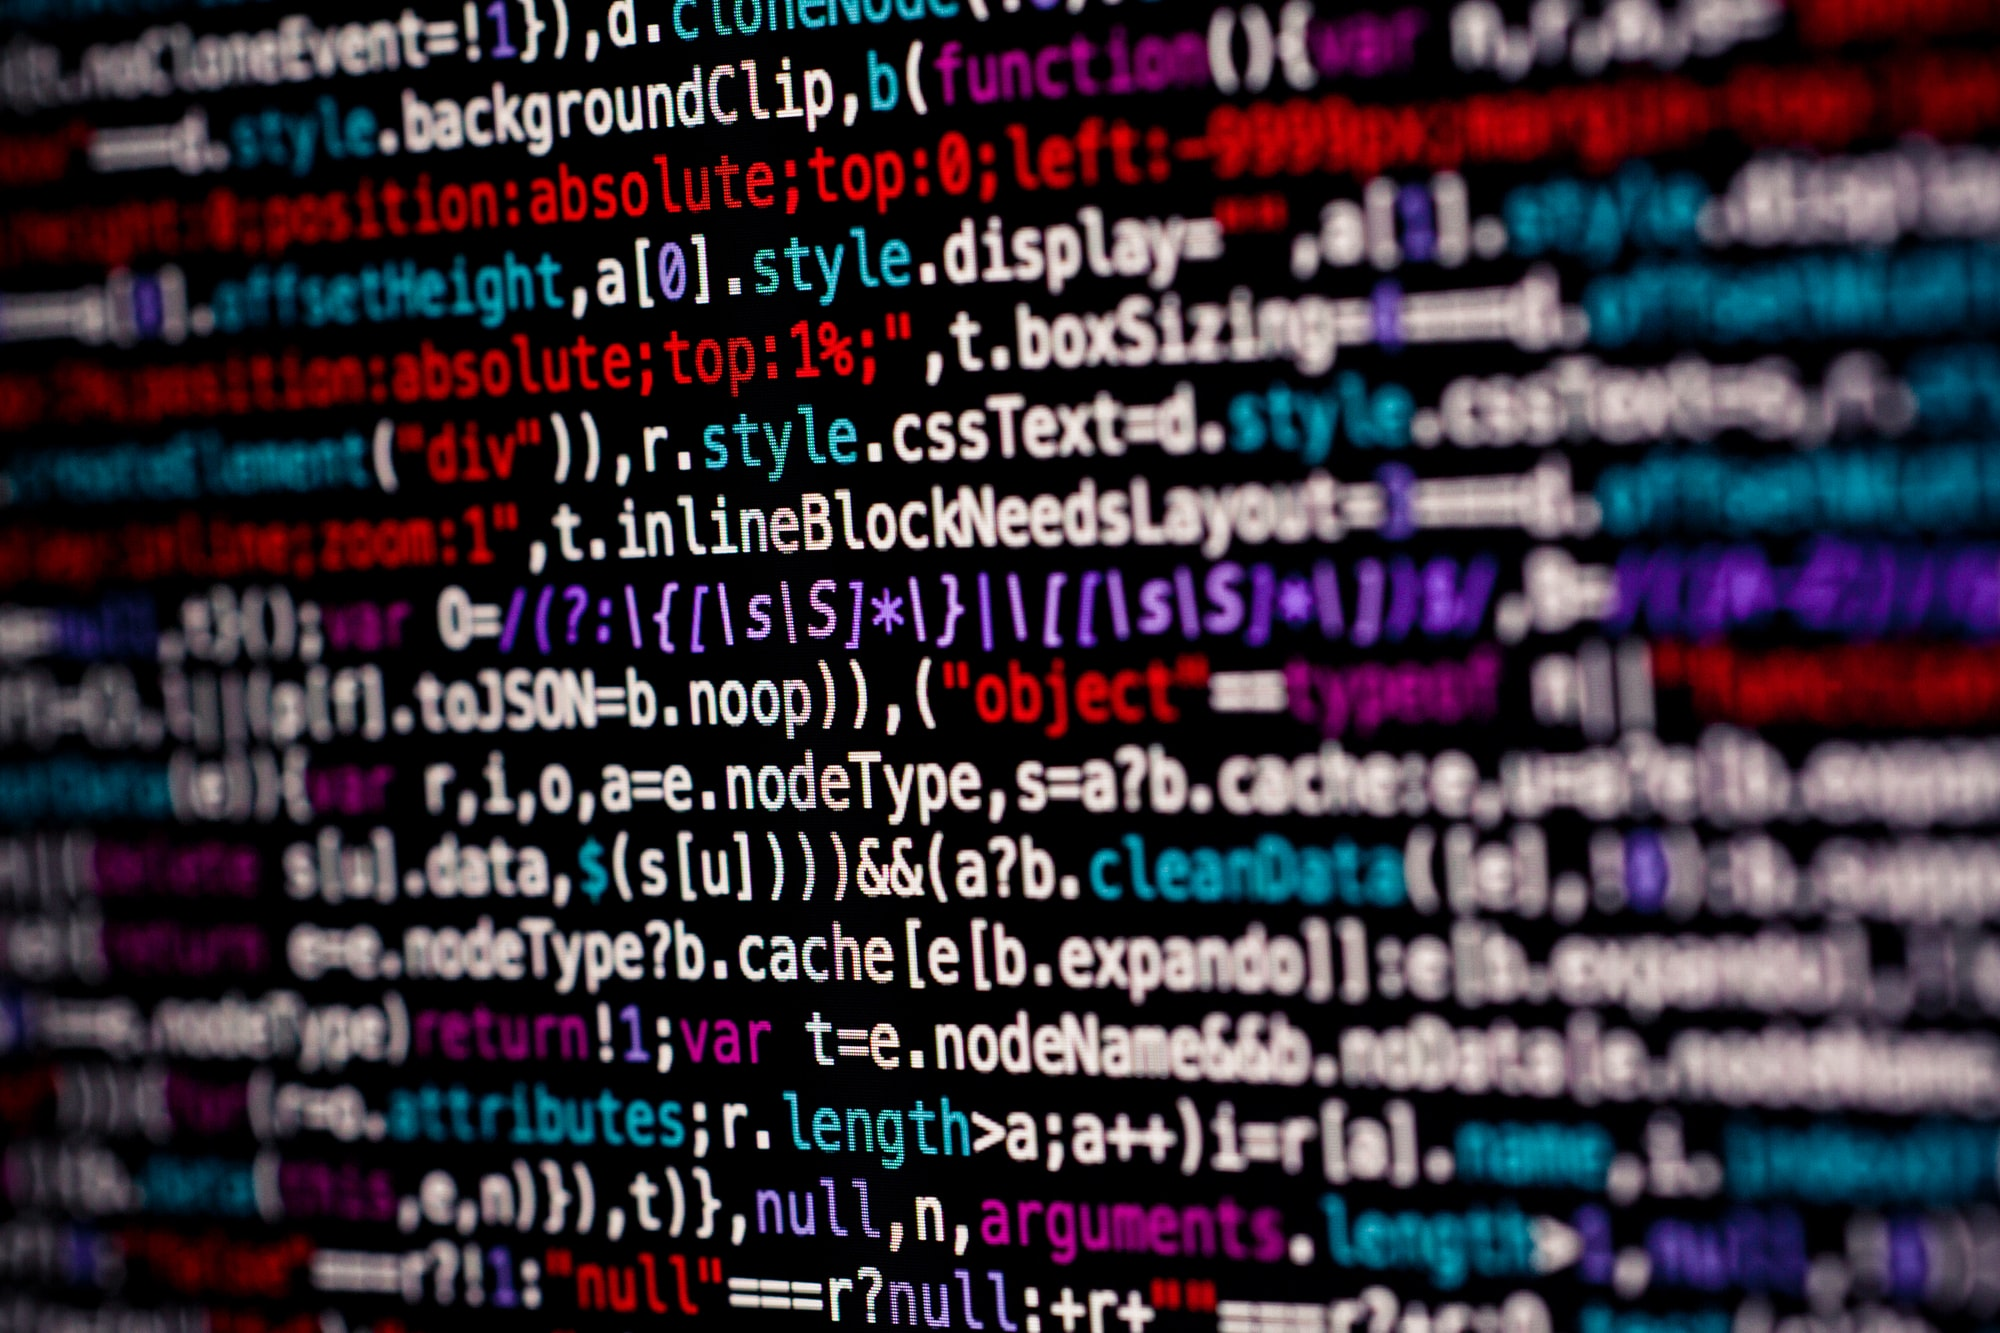 Source Code Readability, Elegance, and Complexity